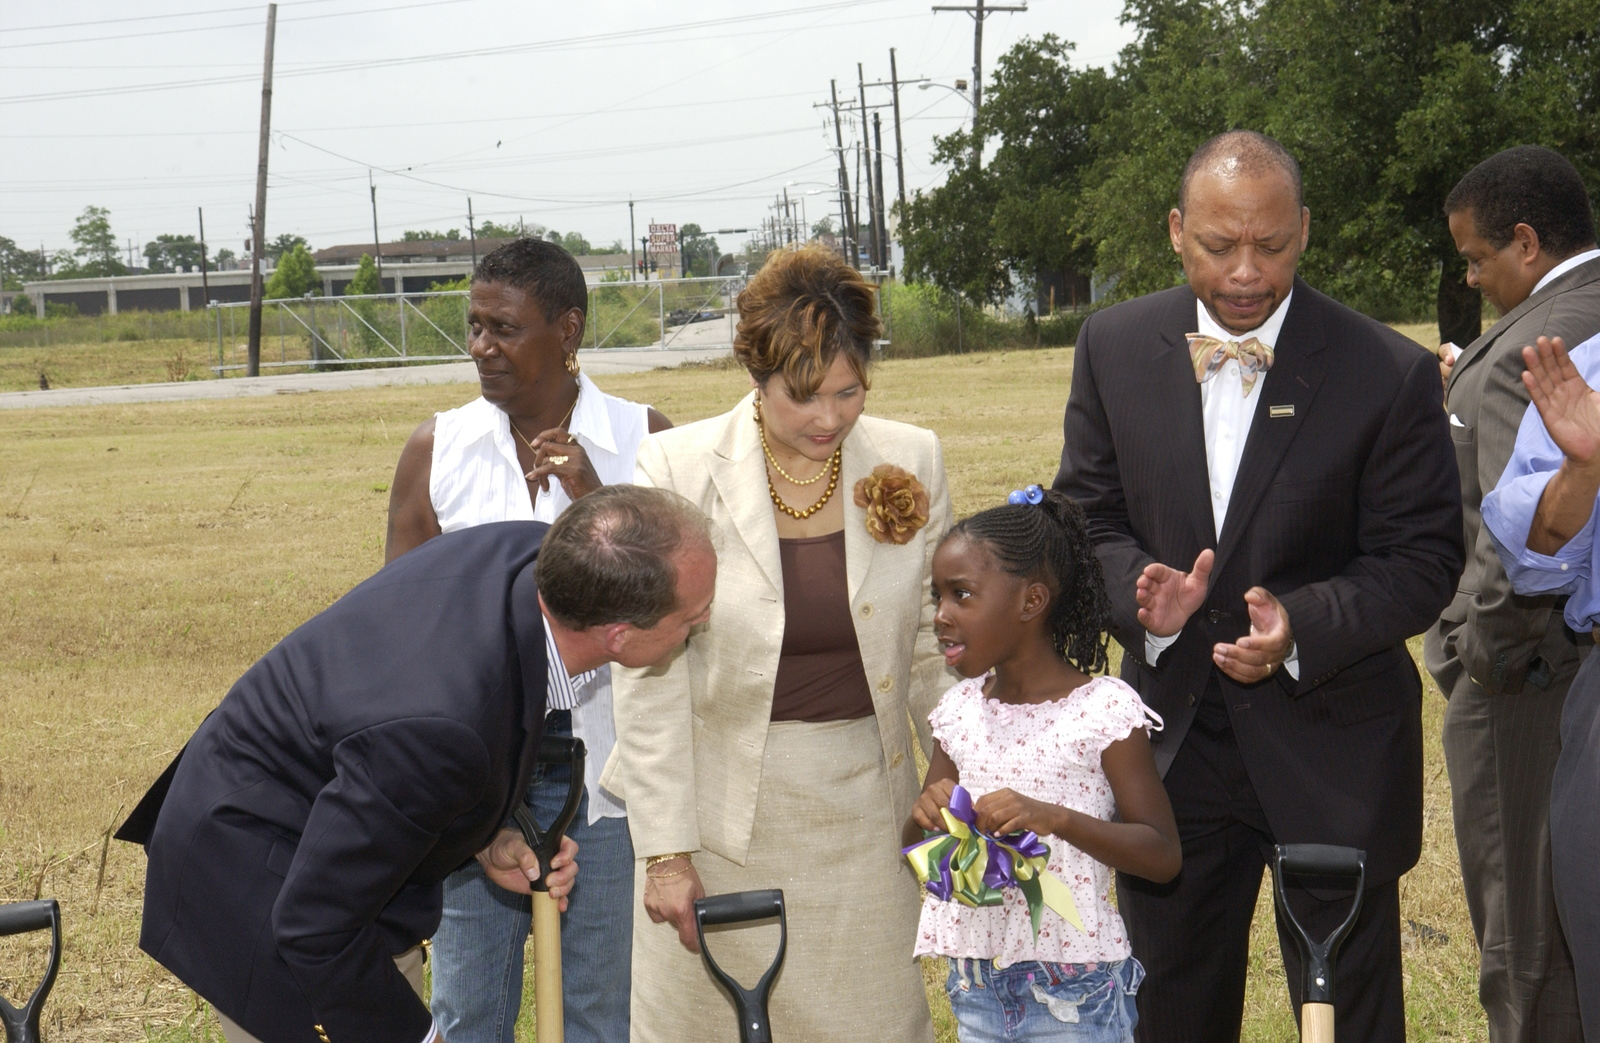 Visit of Secretary Steve Preston to New Orleans,  Louisiana,  where he toured some of the city's public housing communinties (including the Lafitte and C.J. Peete public housing developments),  participated in a groundbreaking ceremony for a community center near the new Abundance Square-Treasure Village mixed-income community in the Upper Ninth Ward,  visited a family (Lillie Daniels and Ronald Craig) that used a HUD program (Housing Choice Voucher Homeownership Program) to become first-time homeowners, and met with city officials to get a briefing on New Orleans' ongoing [post-Hurricane Katrina] recovery